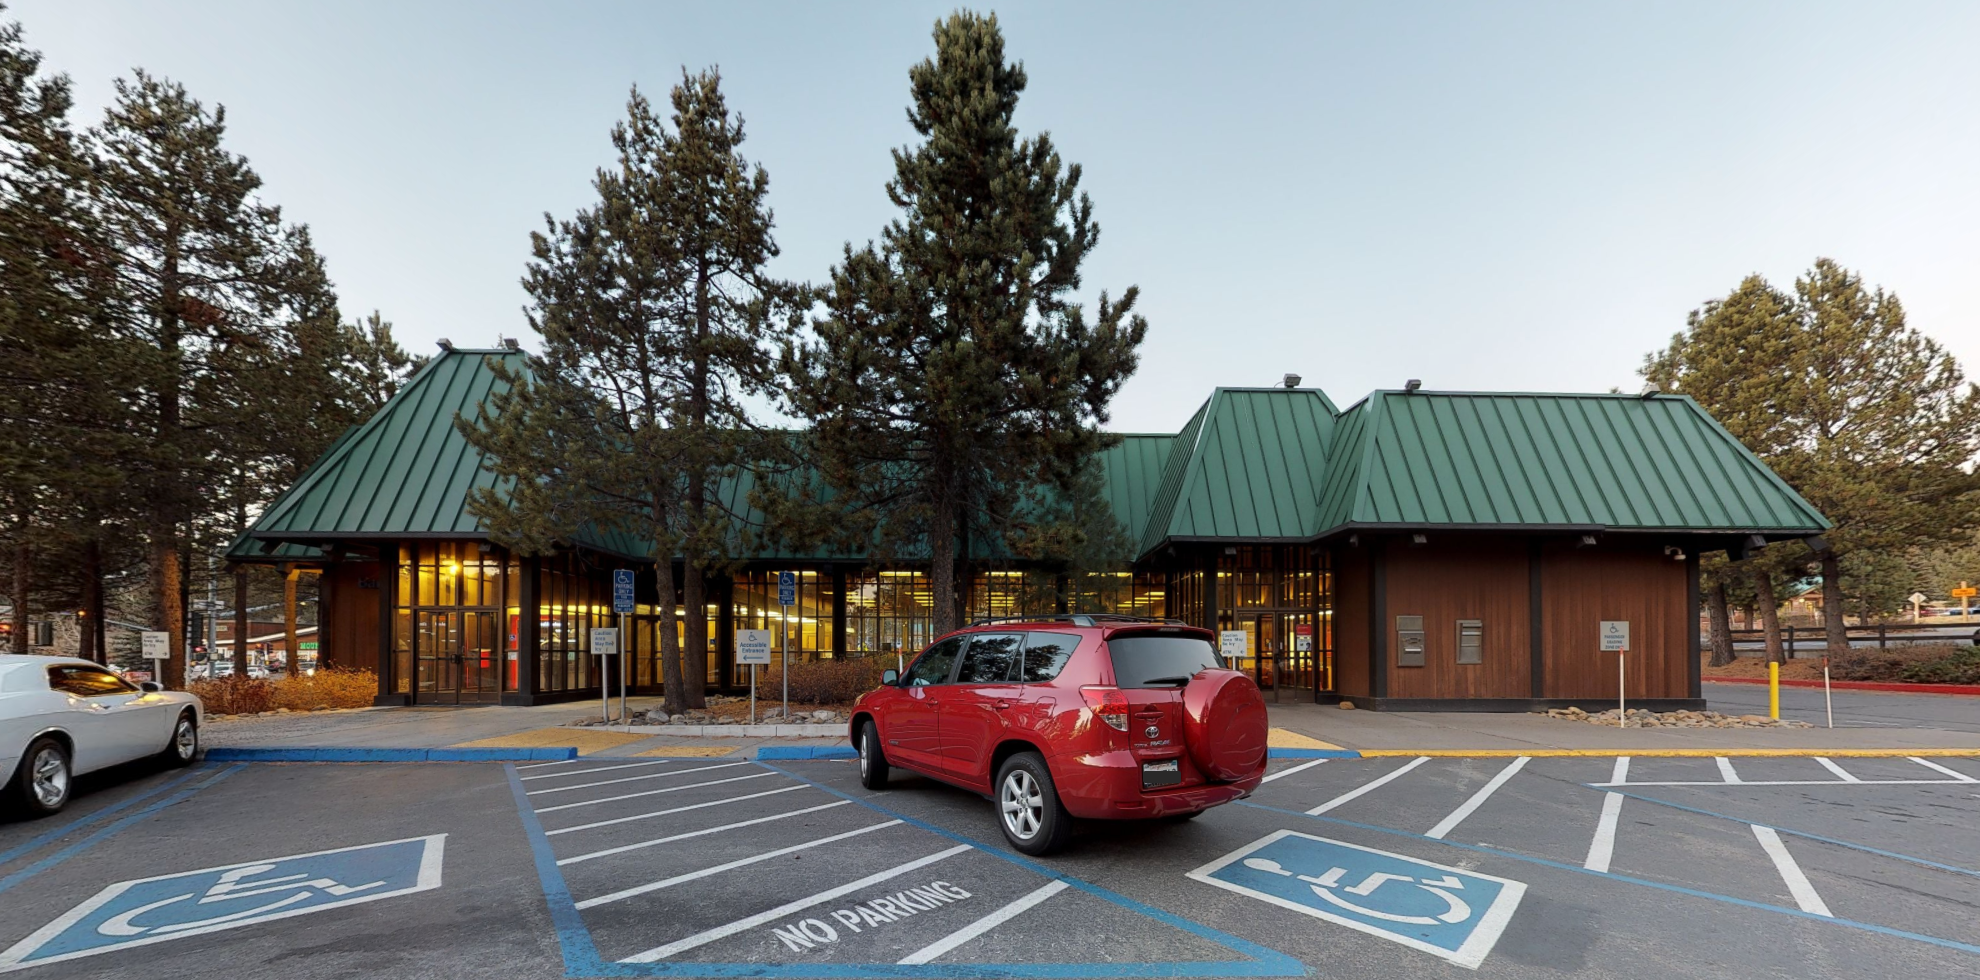 Bank of America financial center with drive-thru ATM | 11265 Donner Pass Rd, Truckee, CA 96161